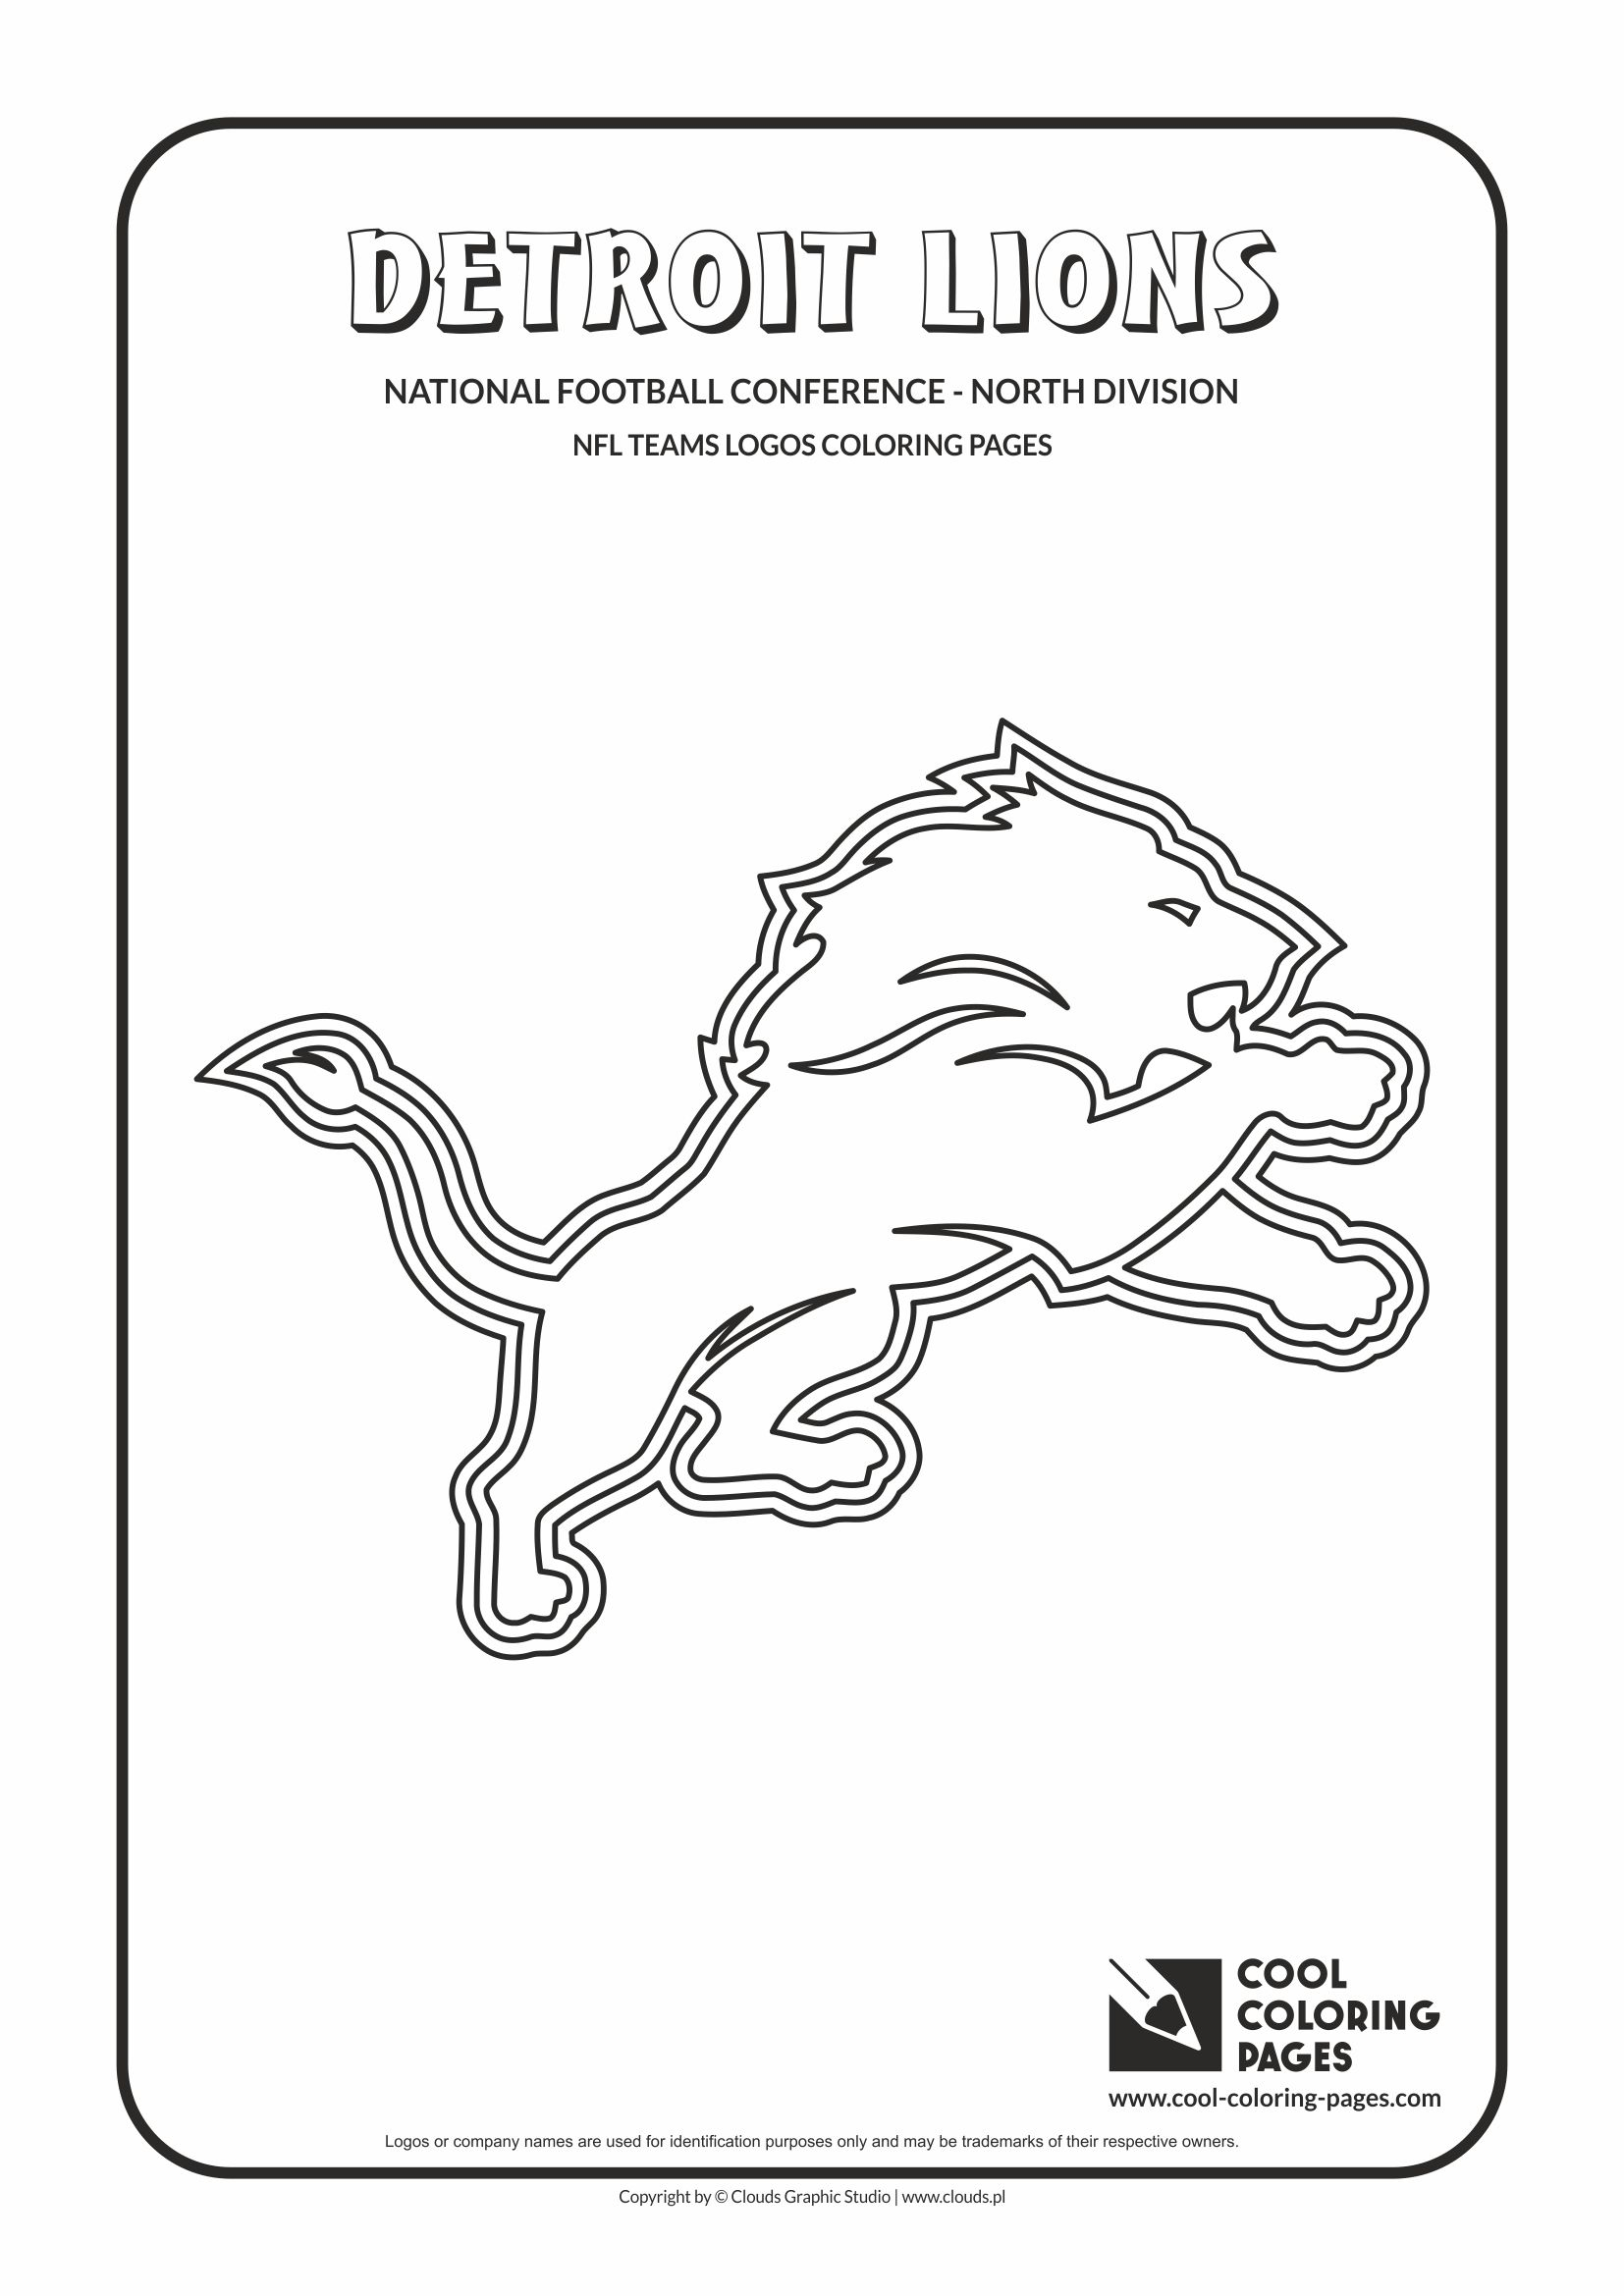 cool coloring pages nfl american football clubs logos national football conference north division